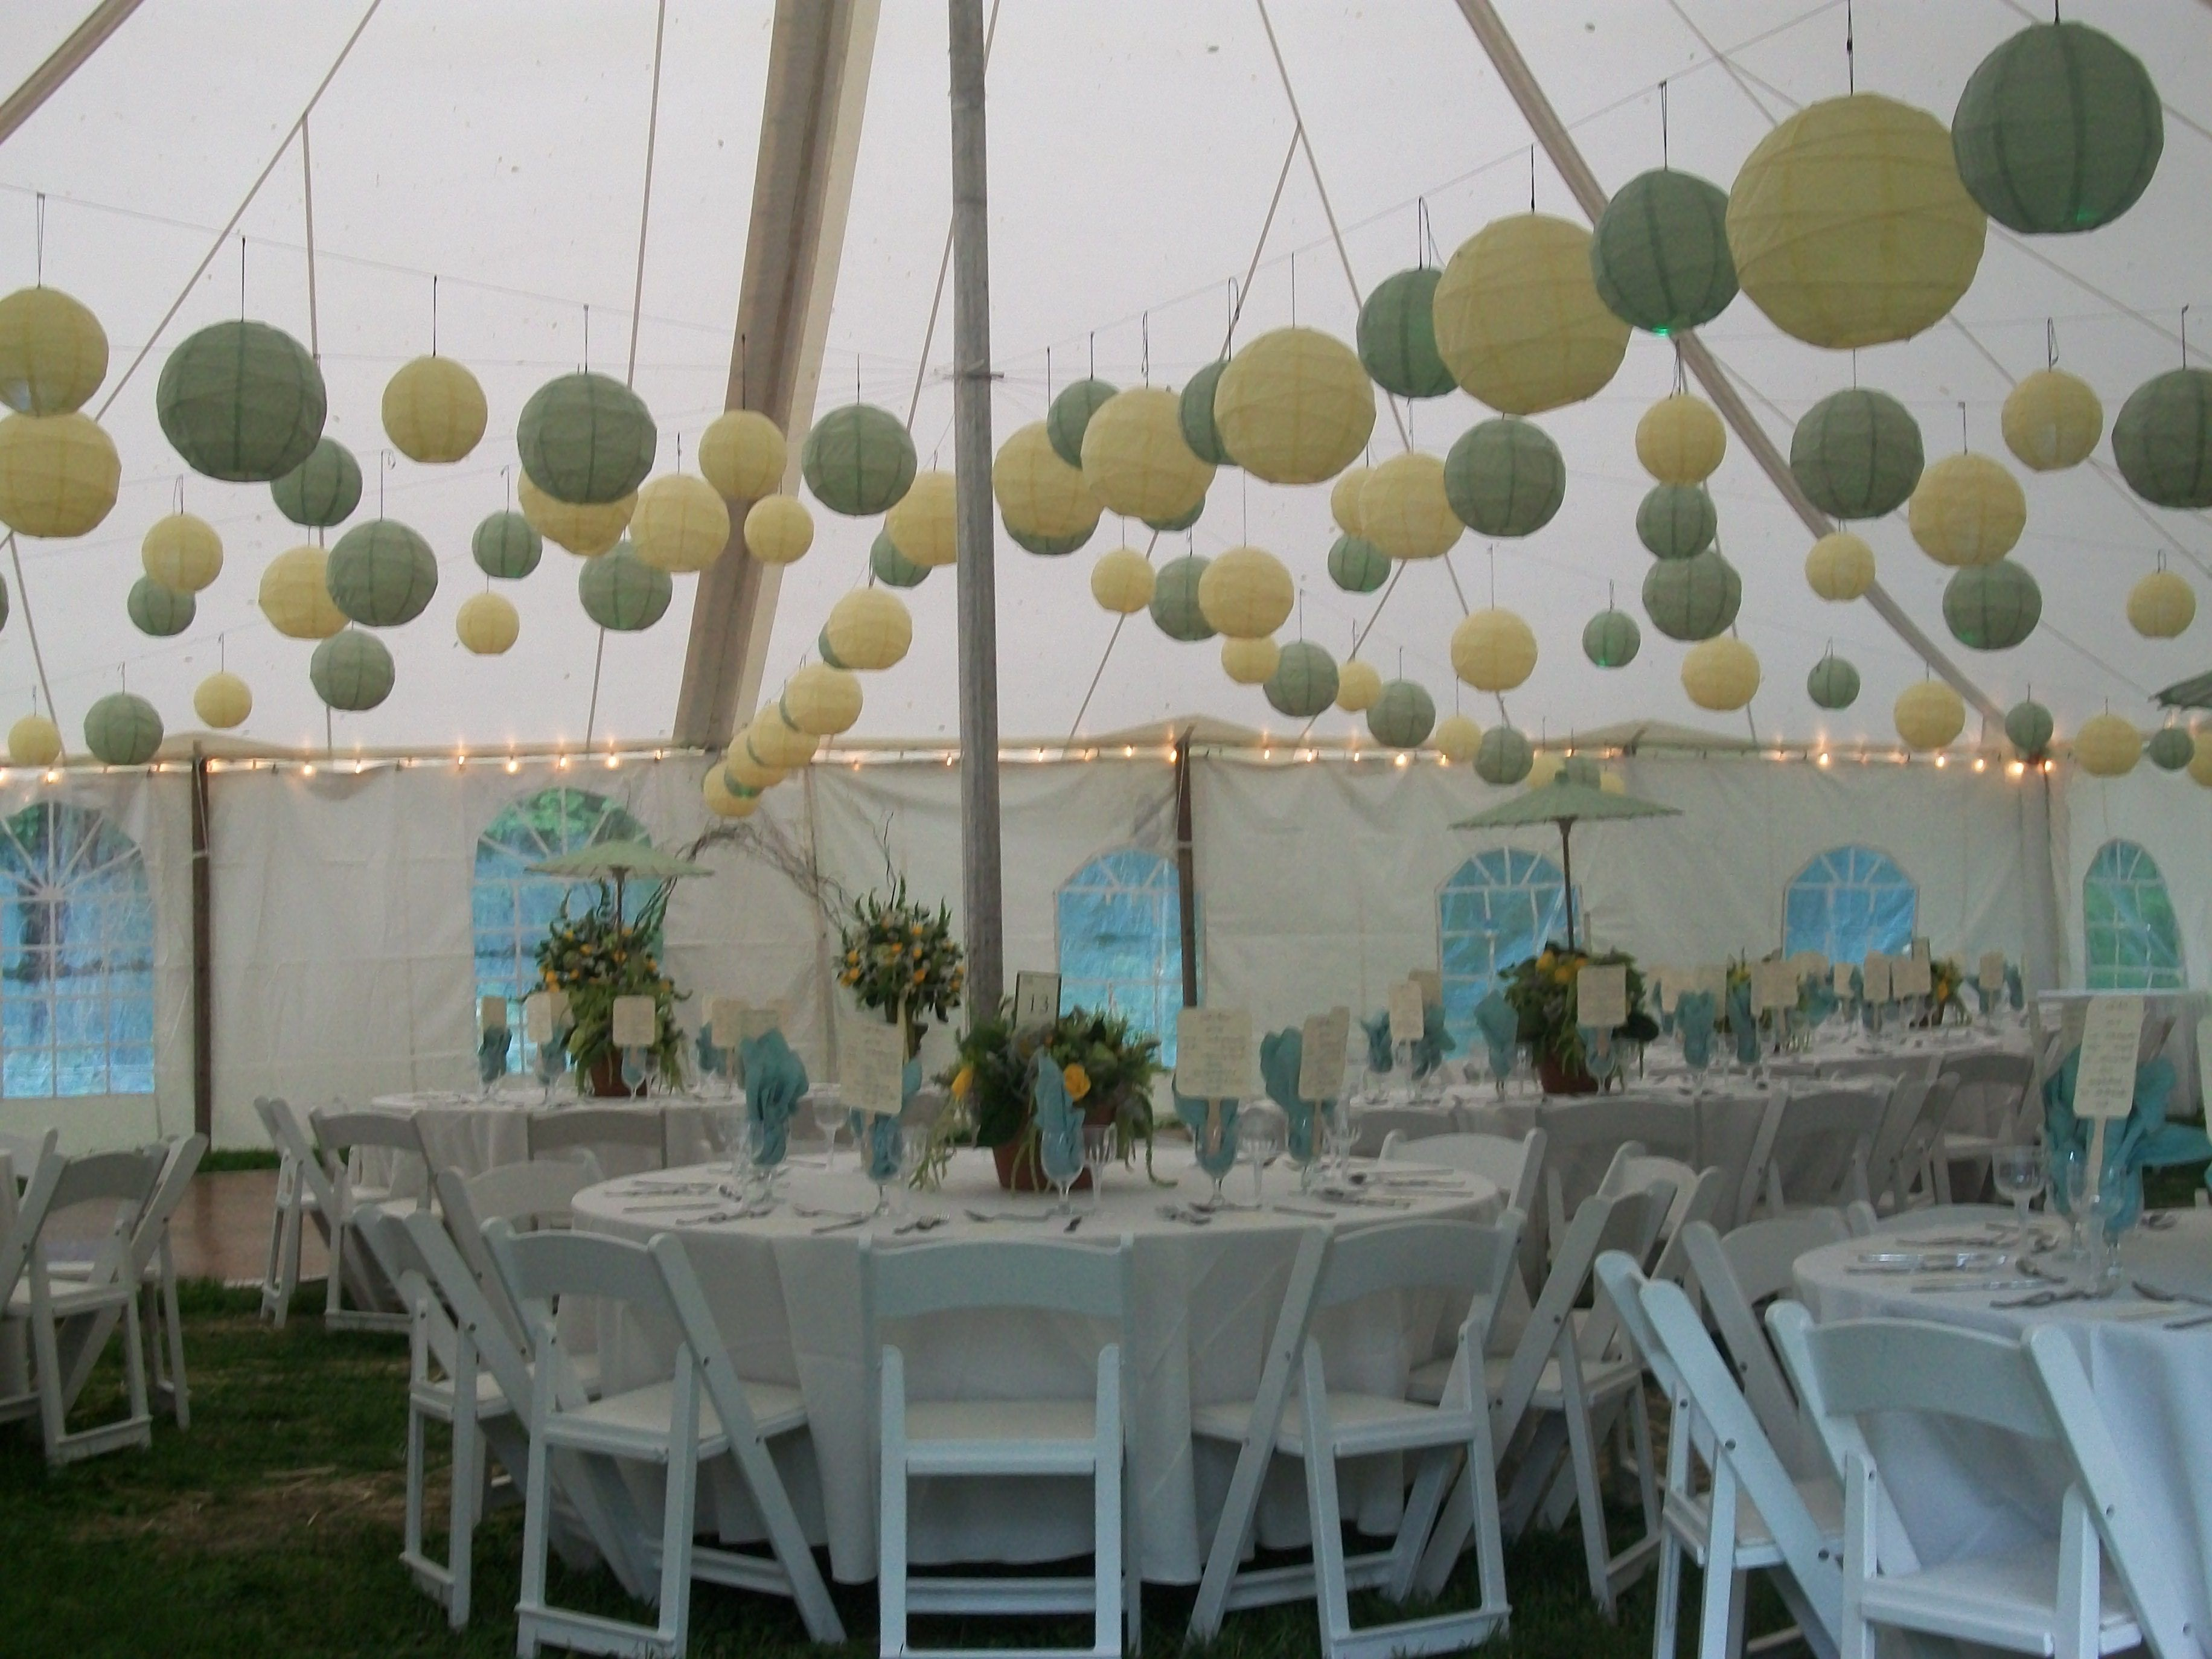 How To Hang Paper Lanterns In Tent Paper Lanterns Hanging Lanterns Party Venues